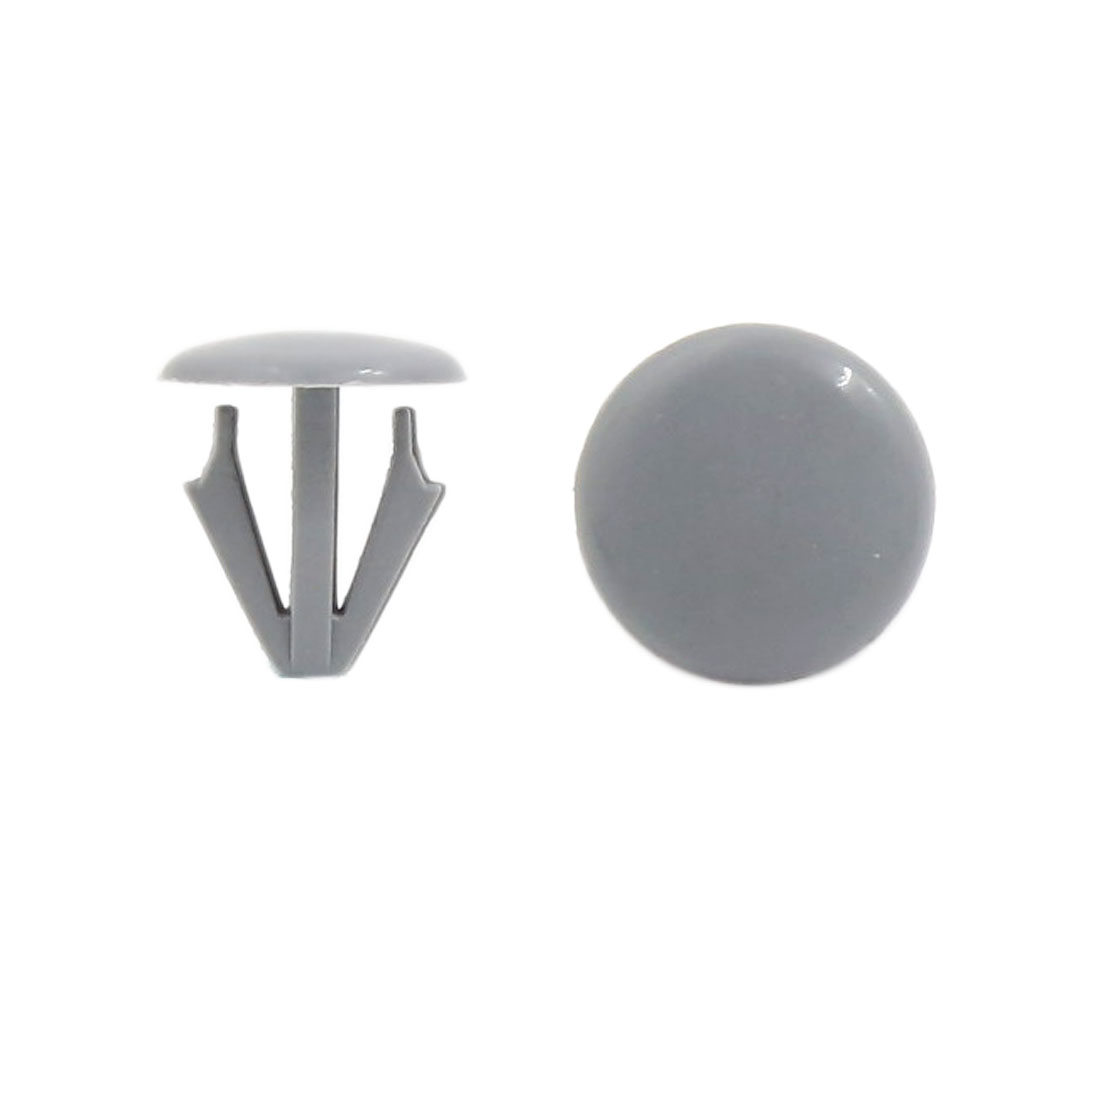 500PCS 15mm Hole 17.5mm Head Gray Car Door Bumper Trim Fasteners for Honda